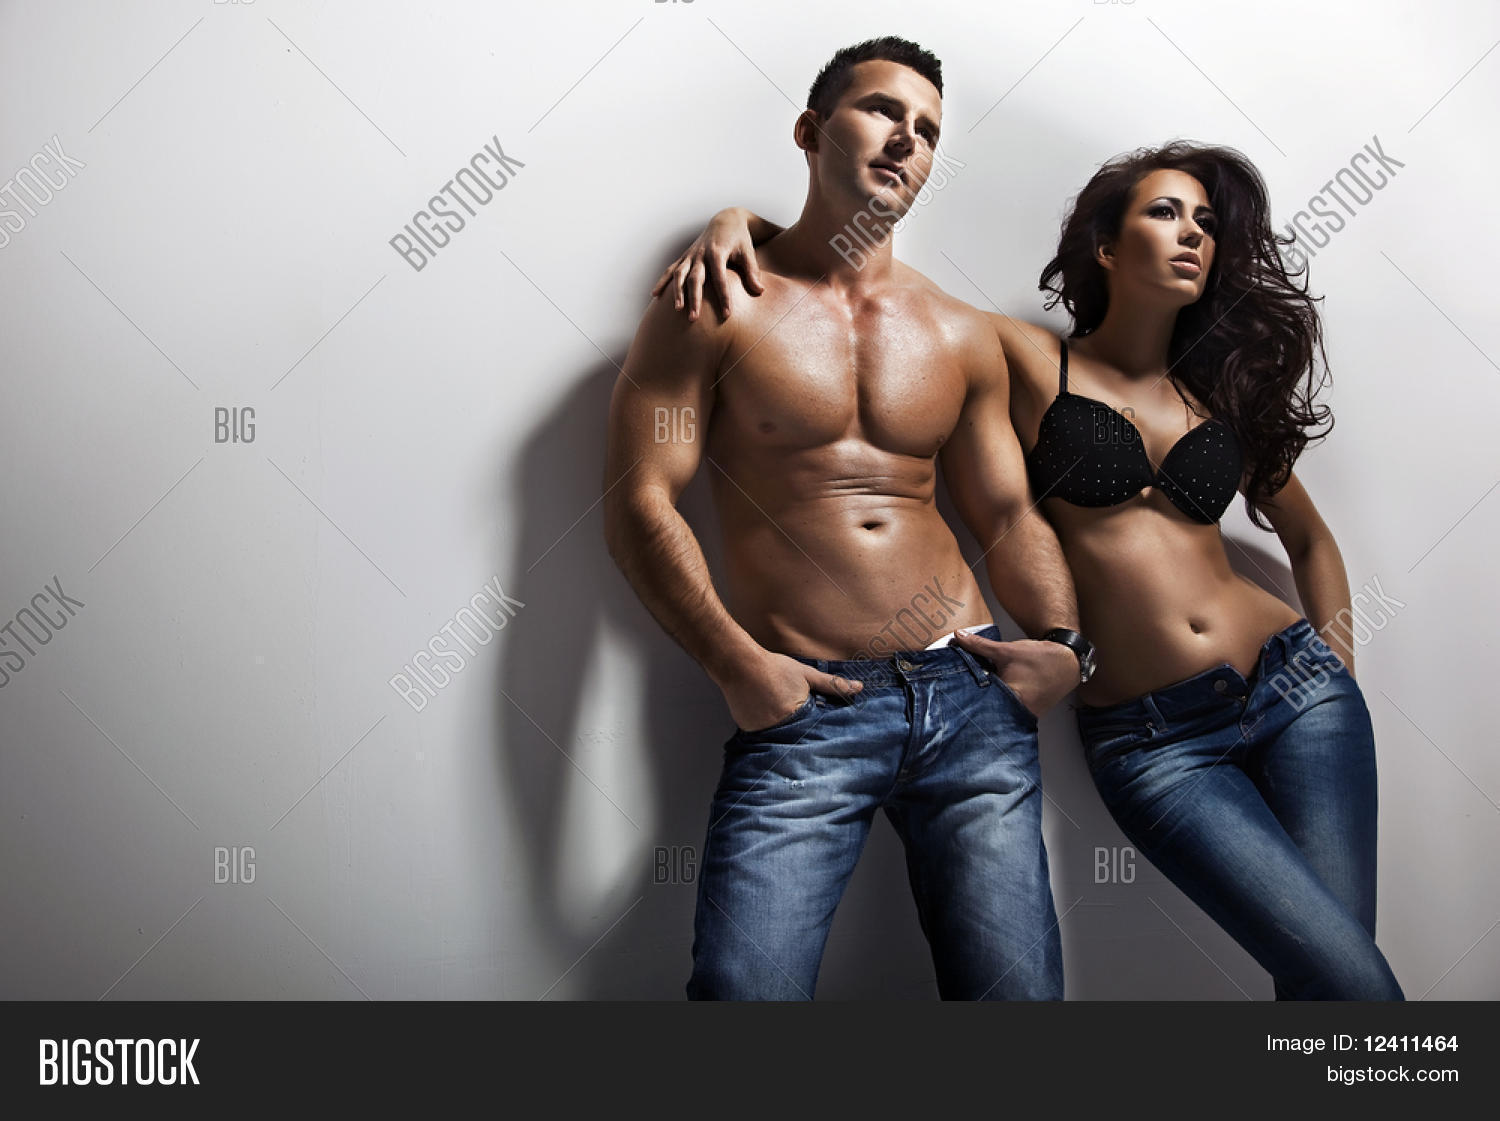 Something and photos of sexy model couple topic apologise